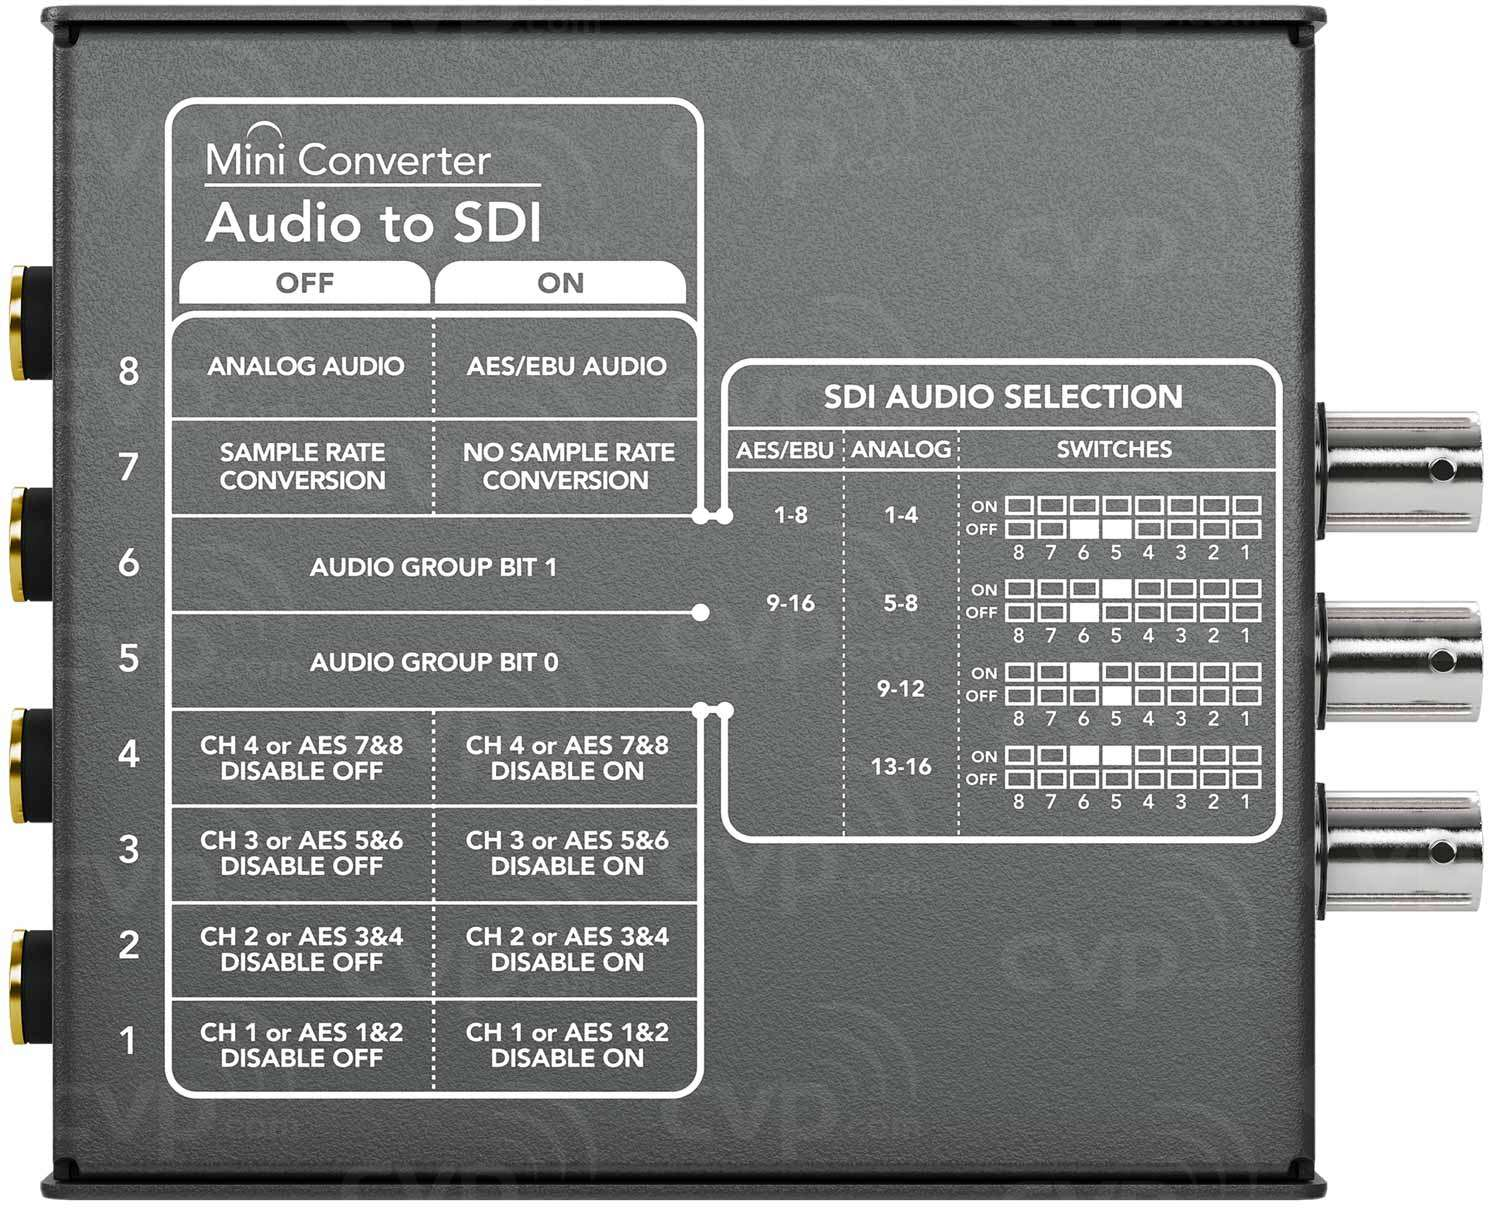 Blackmagic Design Audio to SDI Mini Converter (BMD-CONVMCAUDS)